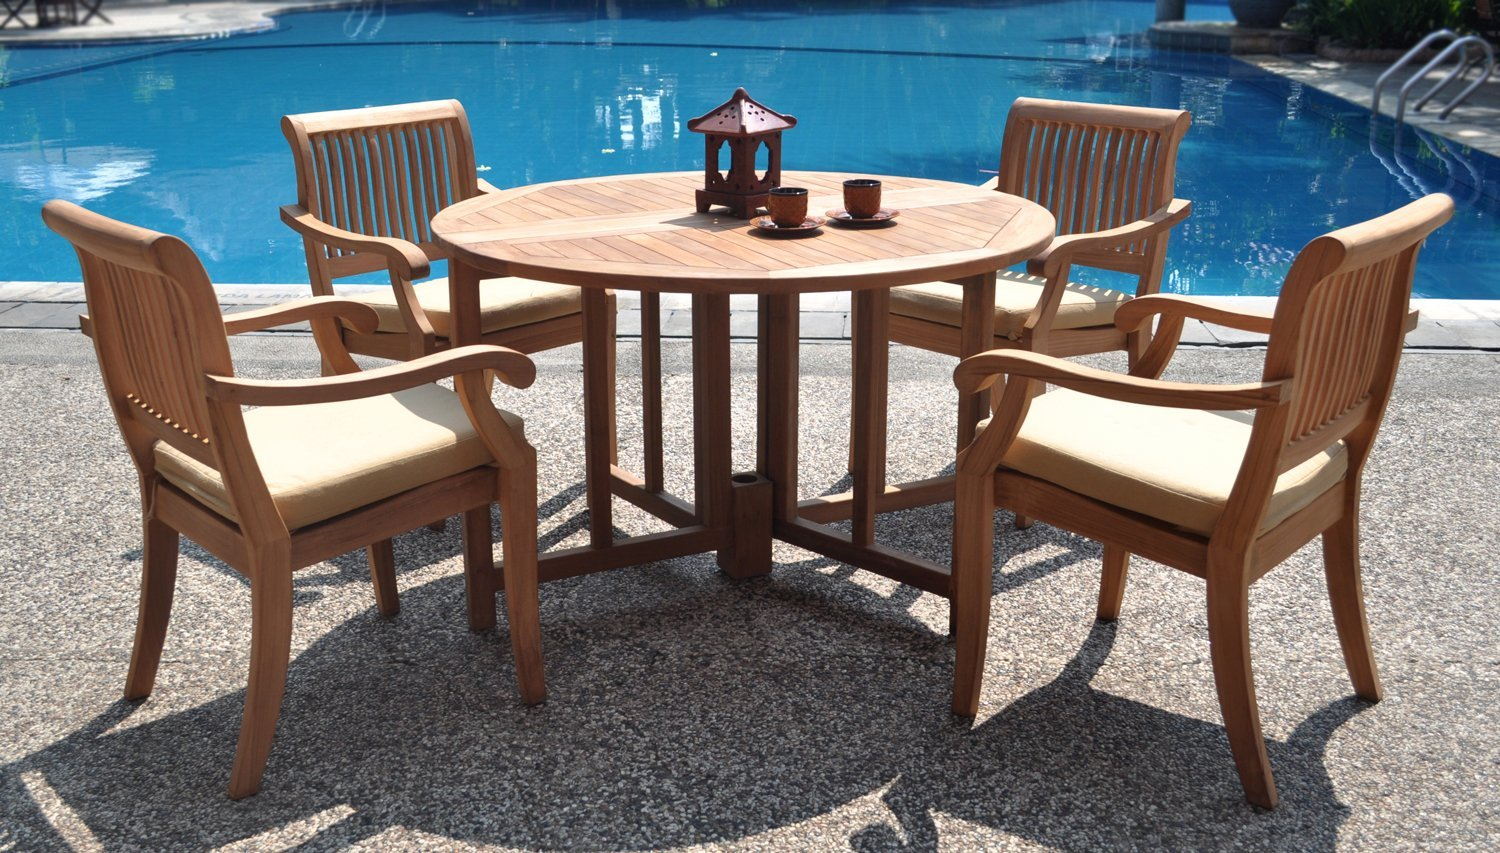 New Concrete And Teak Furniture To Dominate Outdoor Living Trends In 2016 Realtybiznews Real Estate News